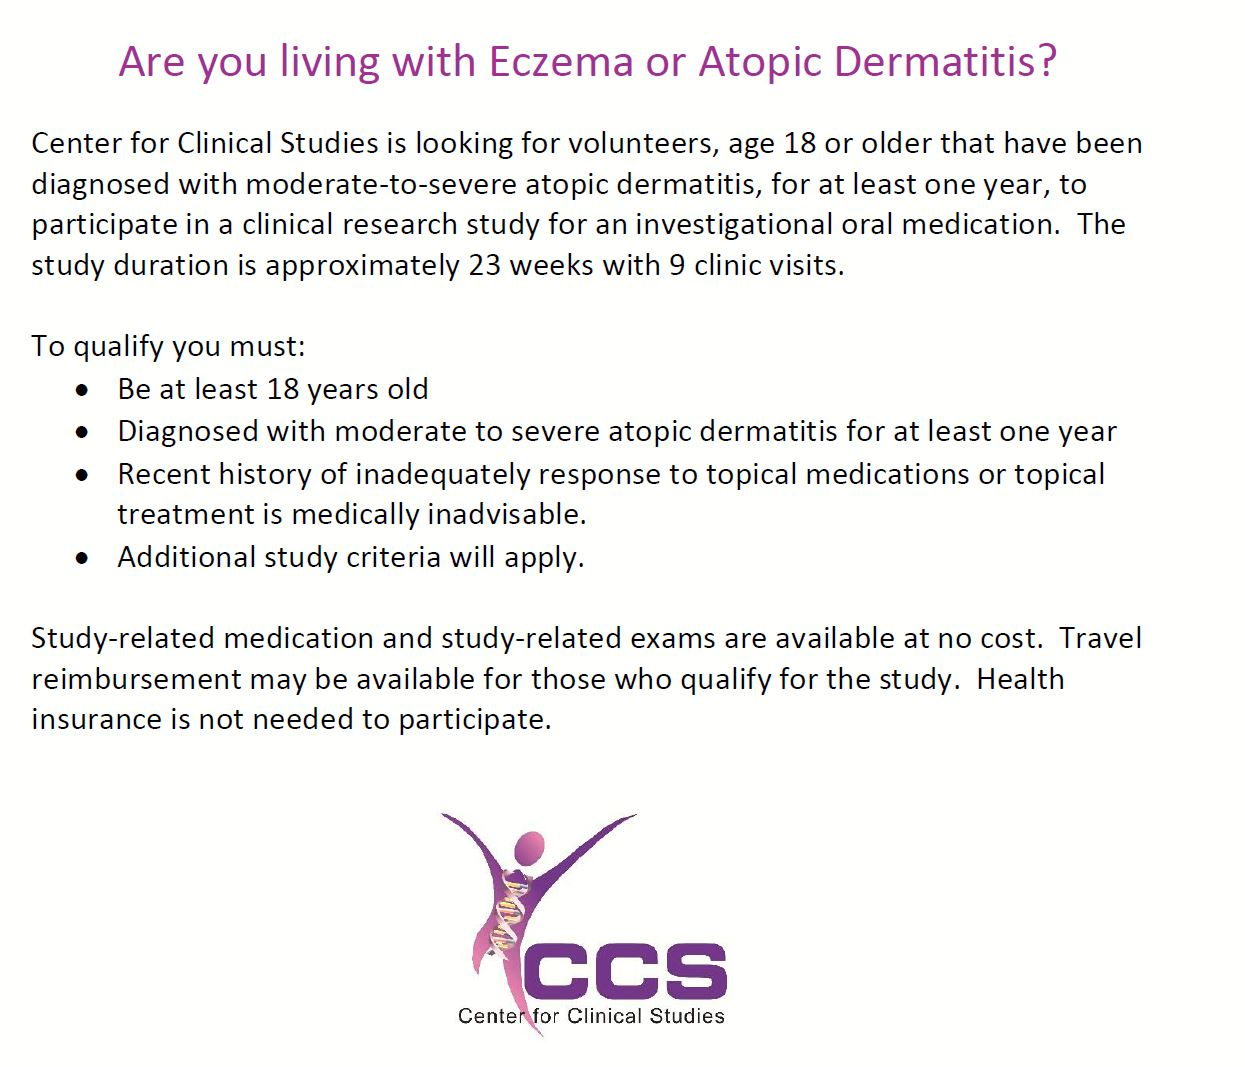 Eczema (Atopic Dermatitis) - Houston TX (Clinical Trial # 41072)